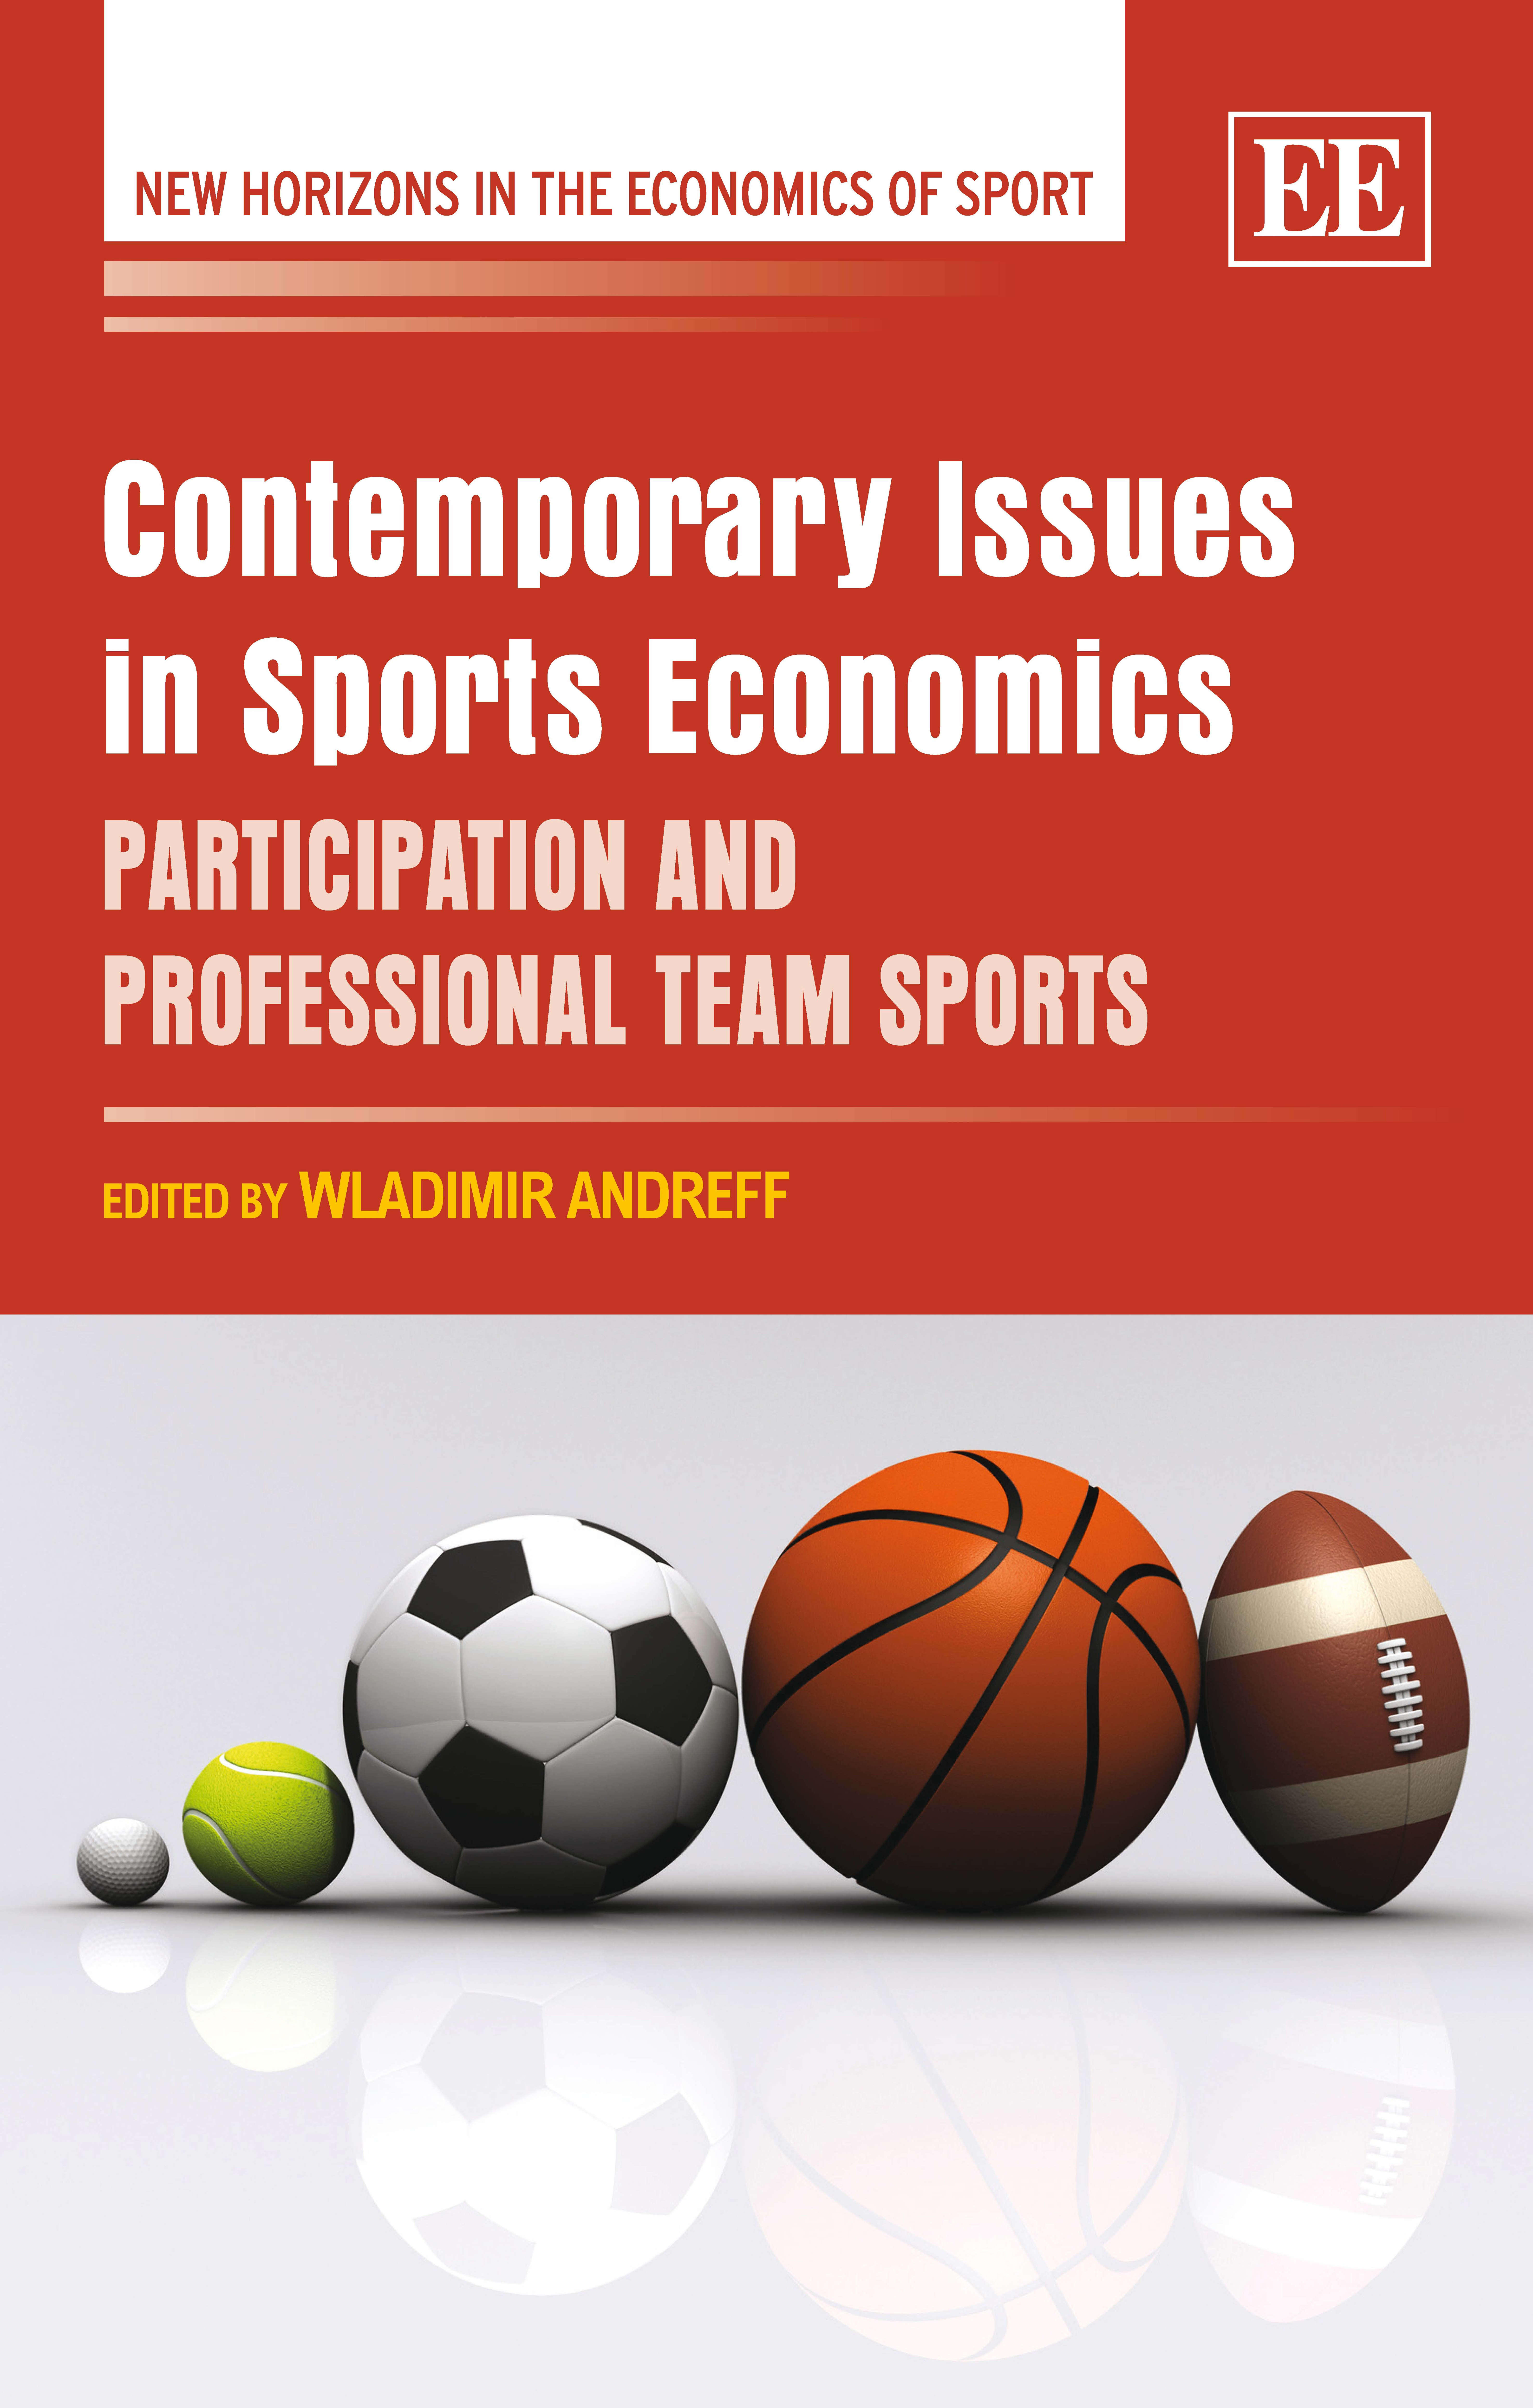 Contemporary Issues in Sports Economics